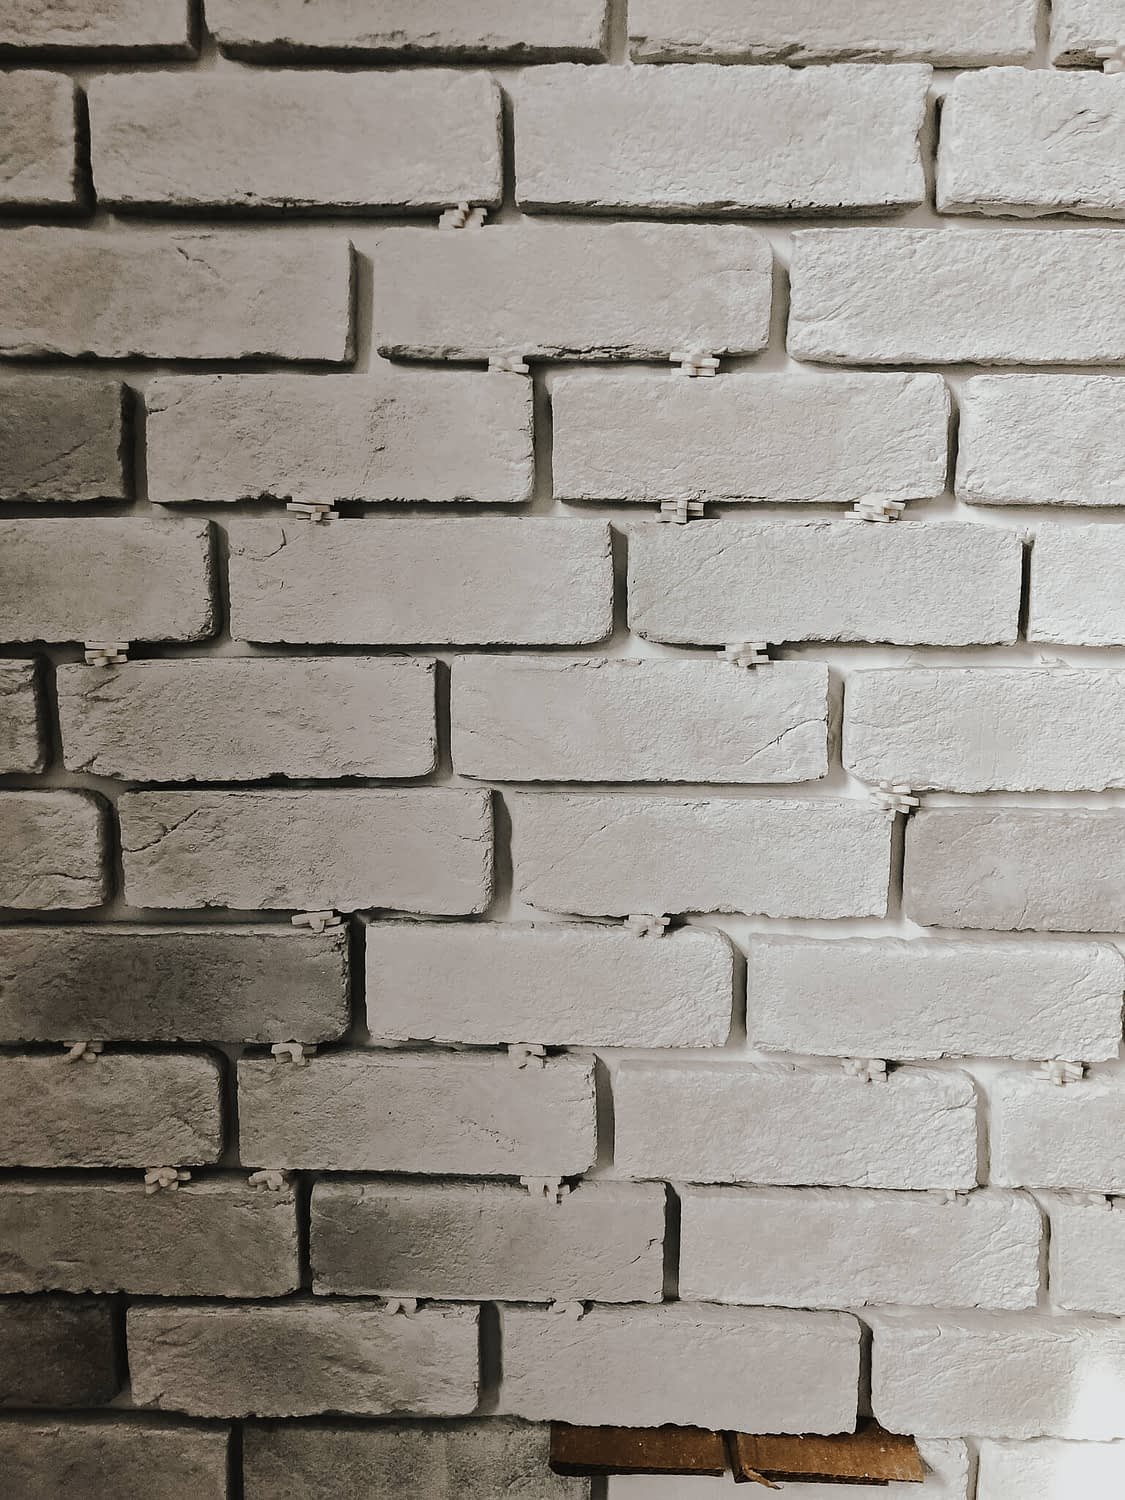 Spacers for thin bricks